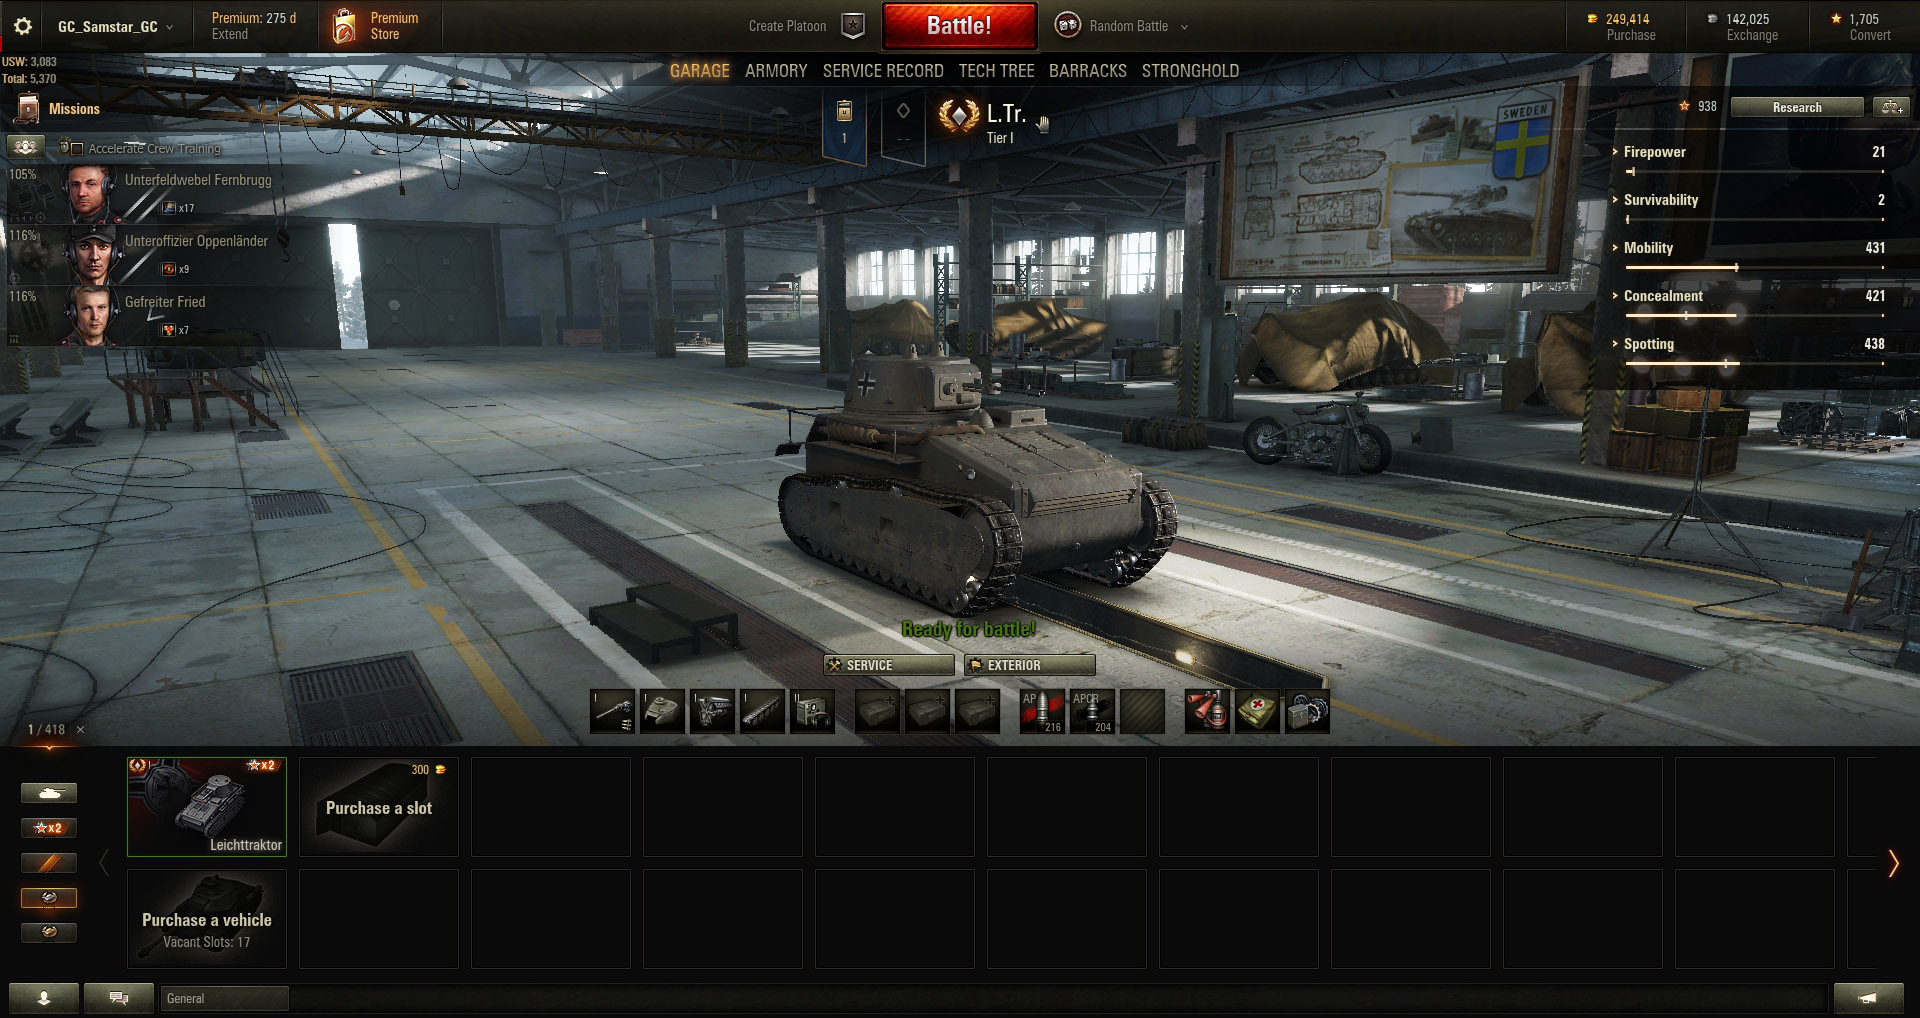 The Leichttraktor is one of the most popular tanks to use when seal clubbing